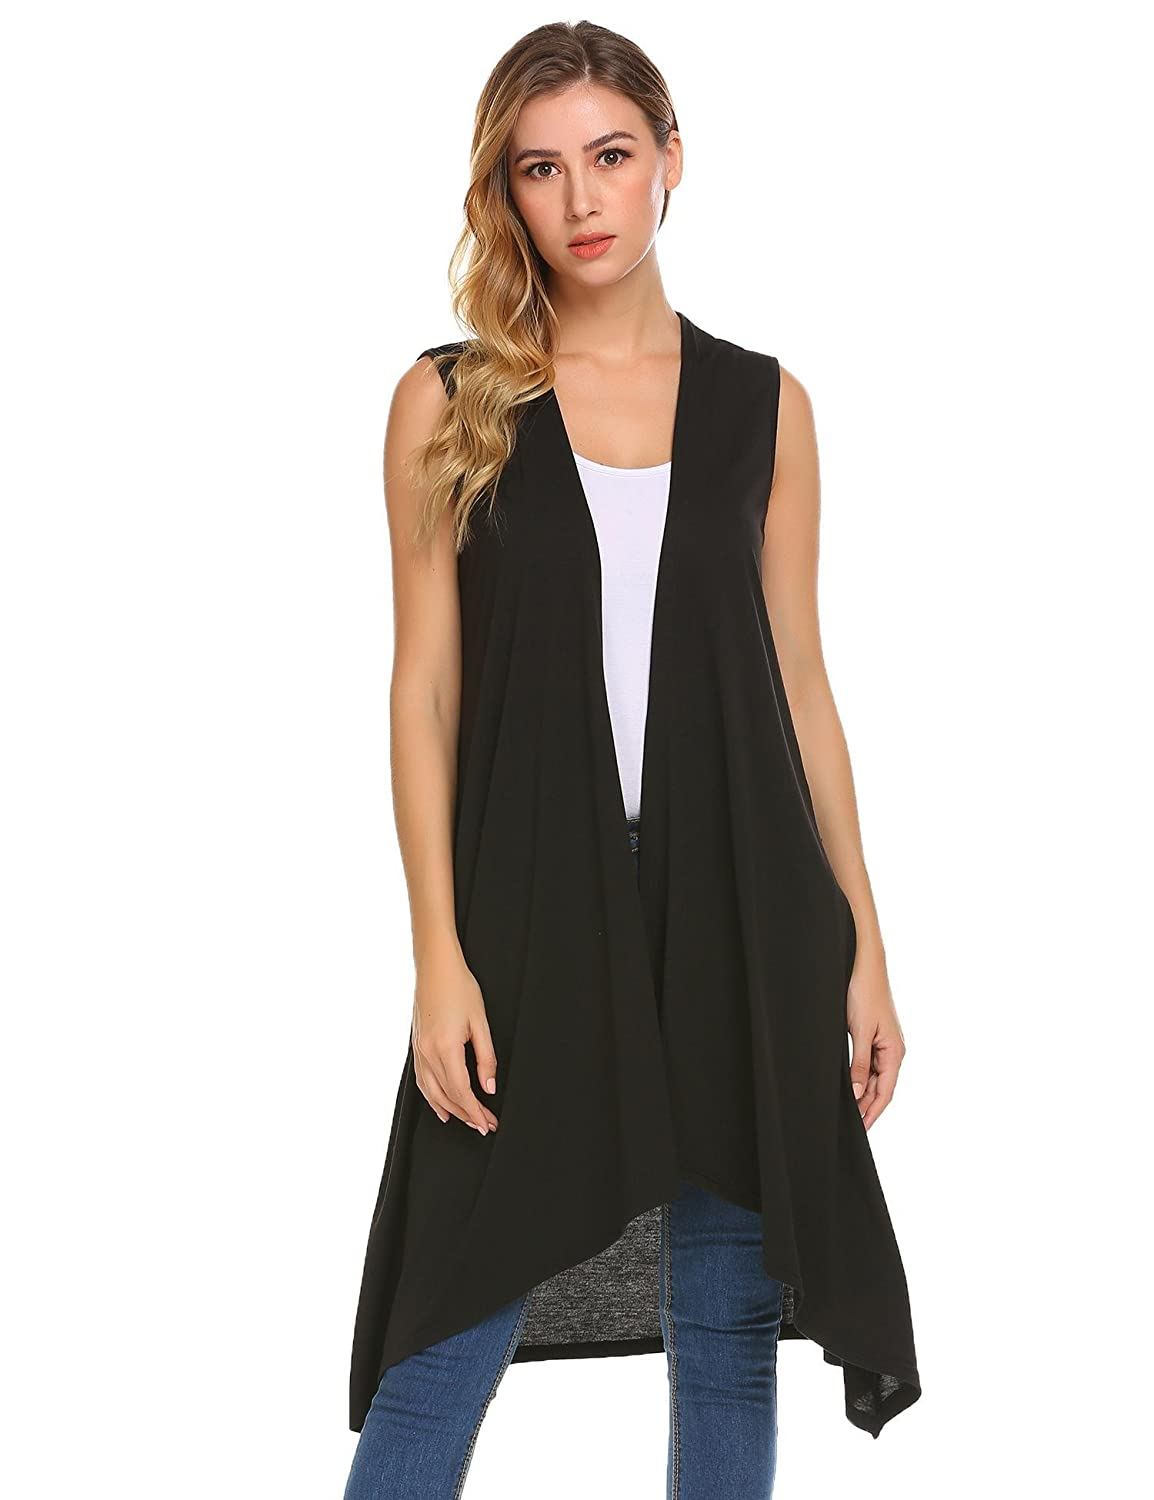 Grabsa Women's Casual Open Front Sleeveless Long Asymmetric Hem Cardigan